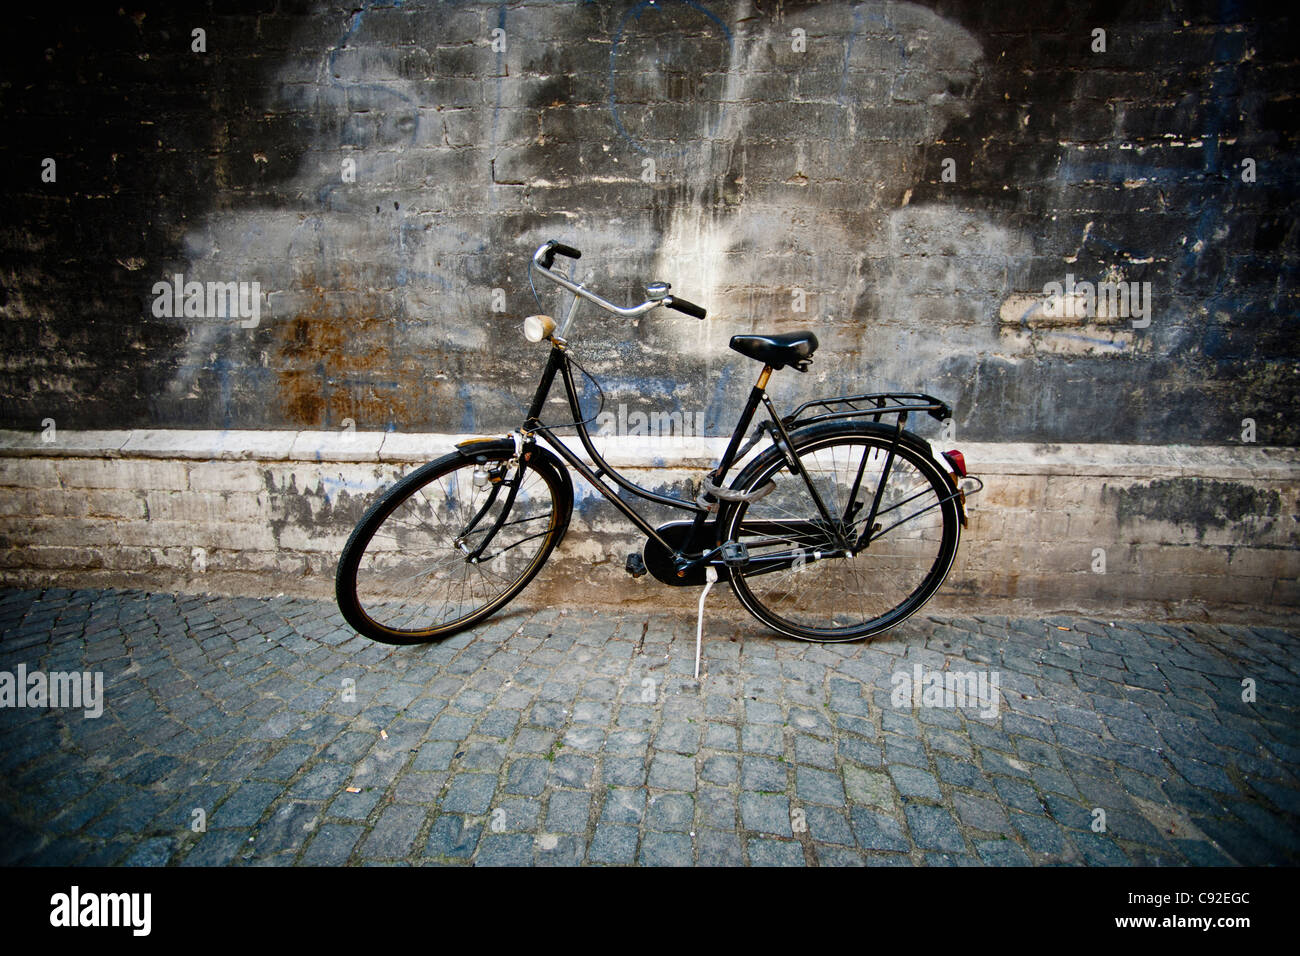 Vintage bicycle parked on cobbled street - Stock Image